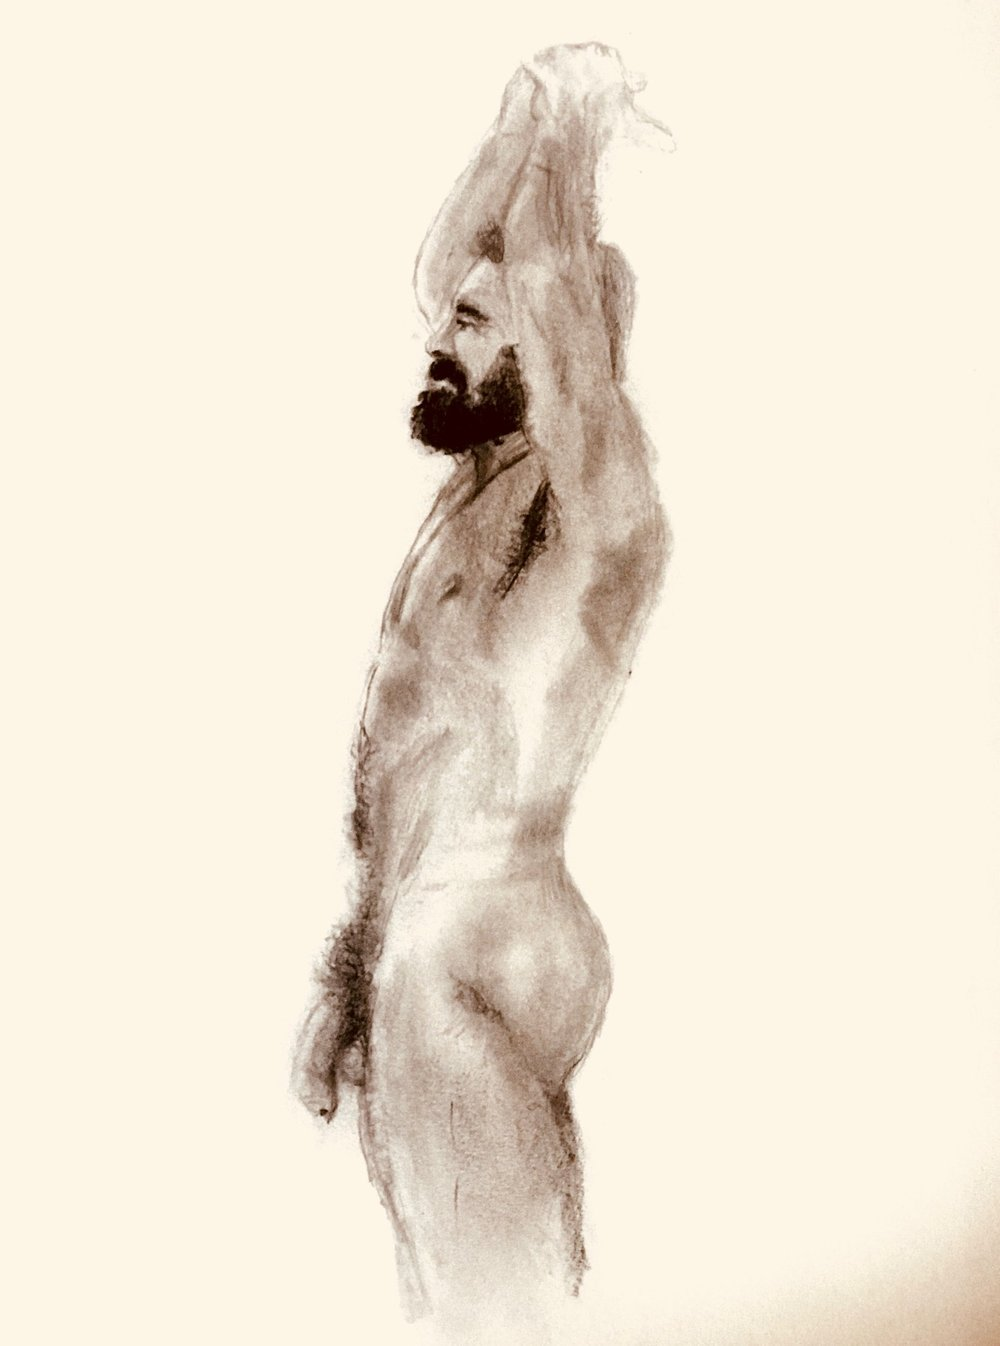 A Spanish Man in the Morning.  Original Drawing available for purchase at Maison Depoivre.  https://www.artsy.net/maison-depoivre/artist/saul-lyons